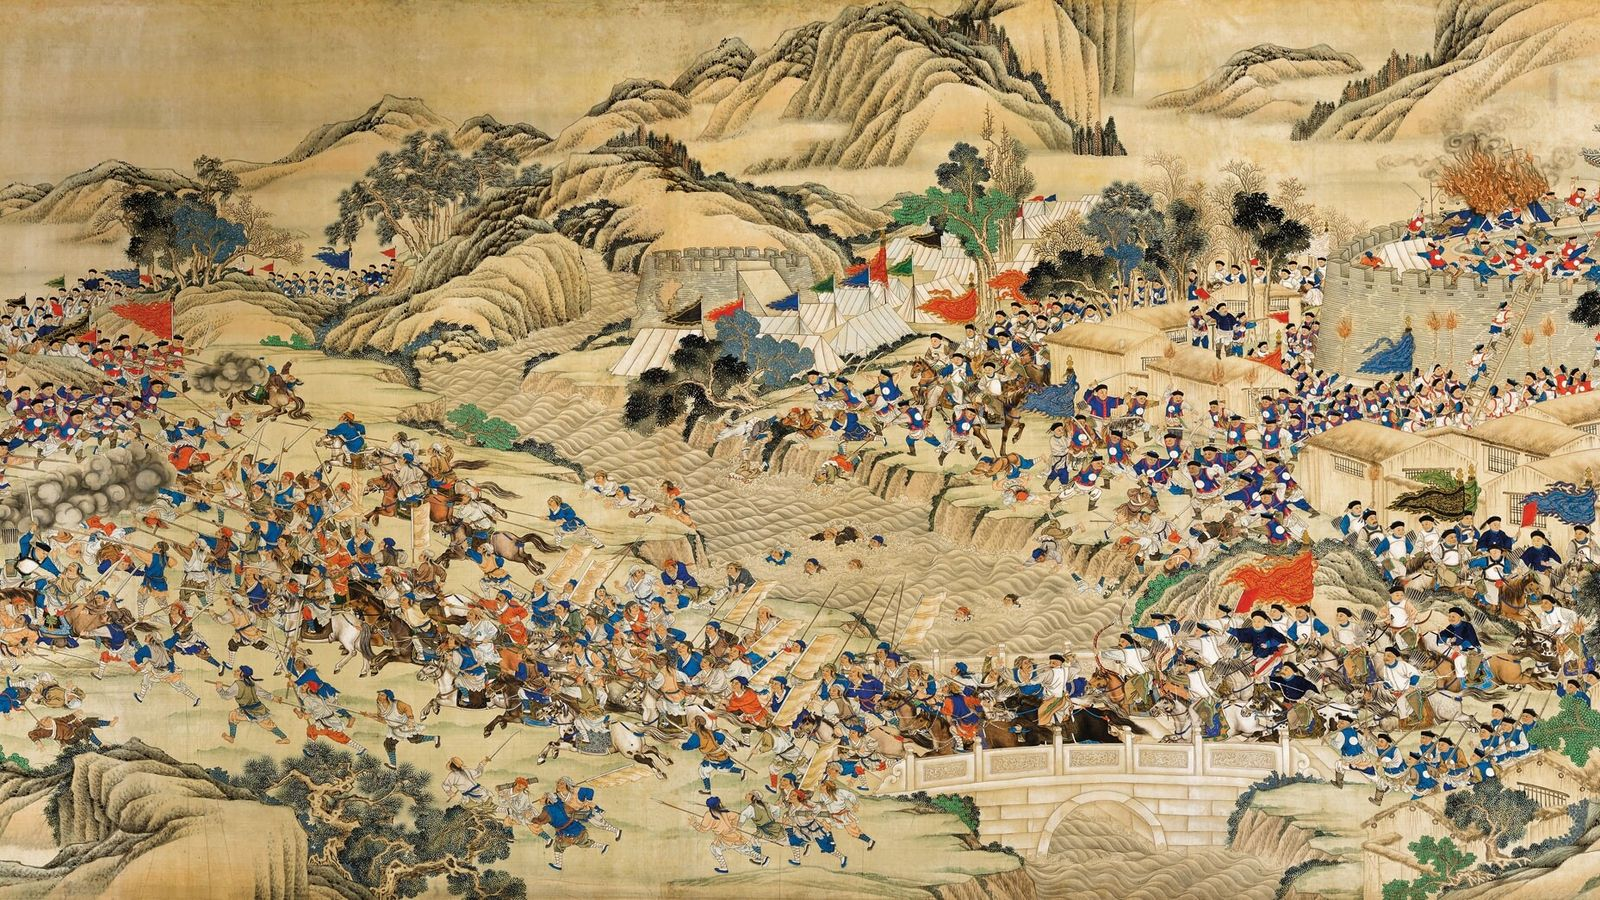 The Taiping rebels can be seen retreating across a bridge pursued by Chinese imperial forces during ...